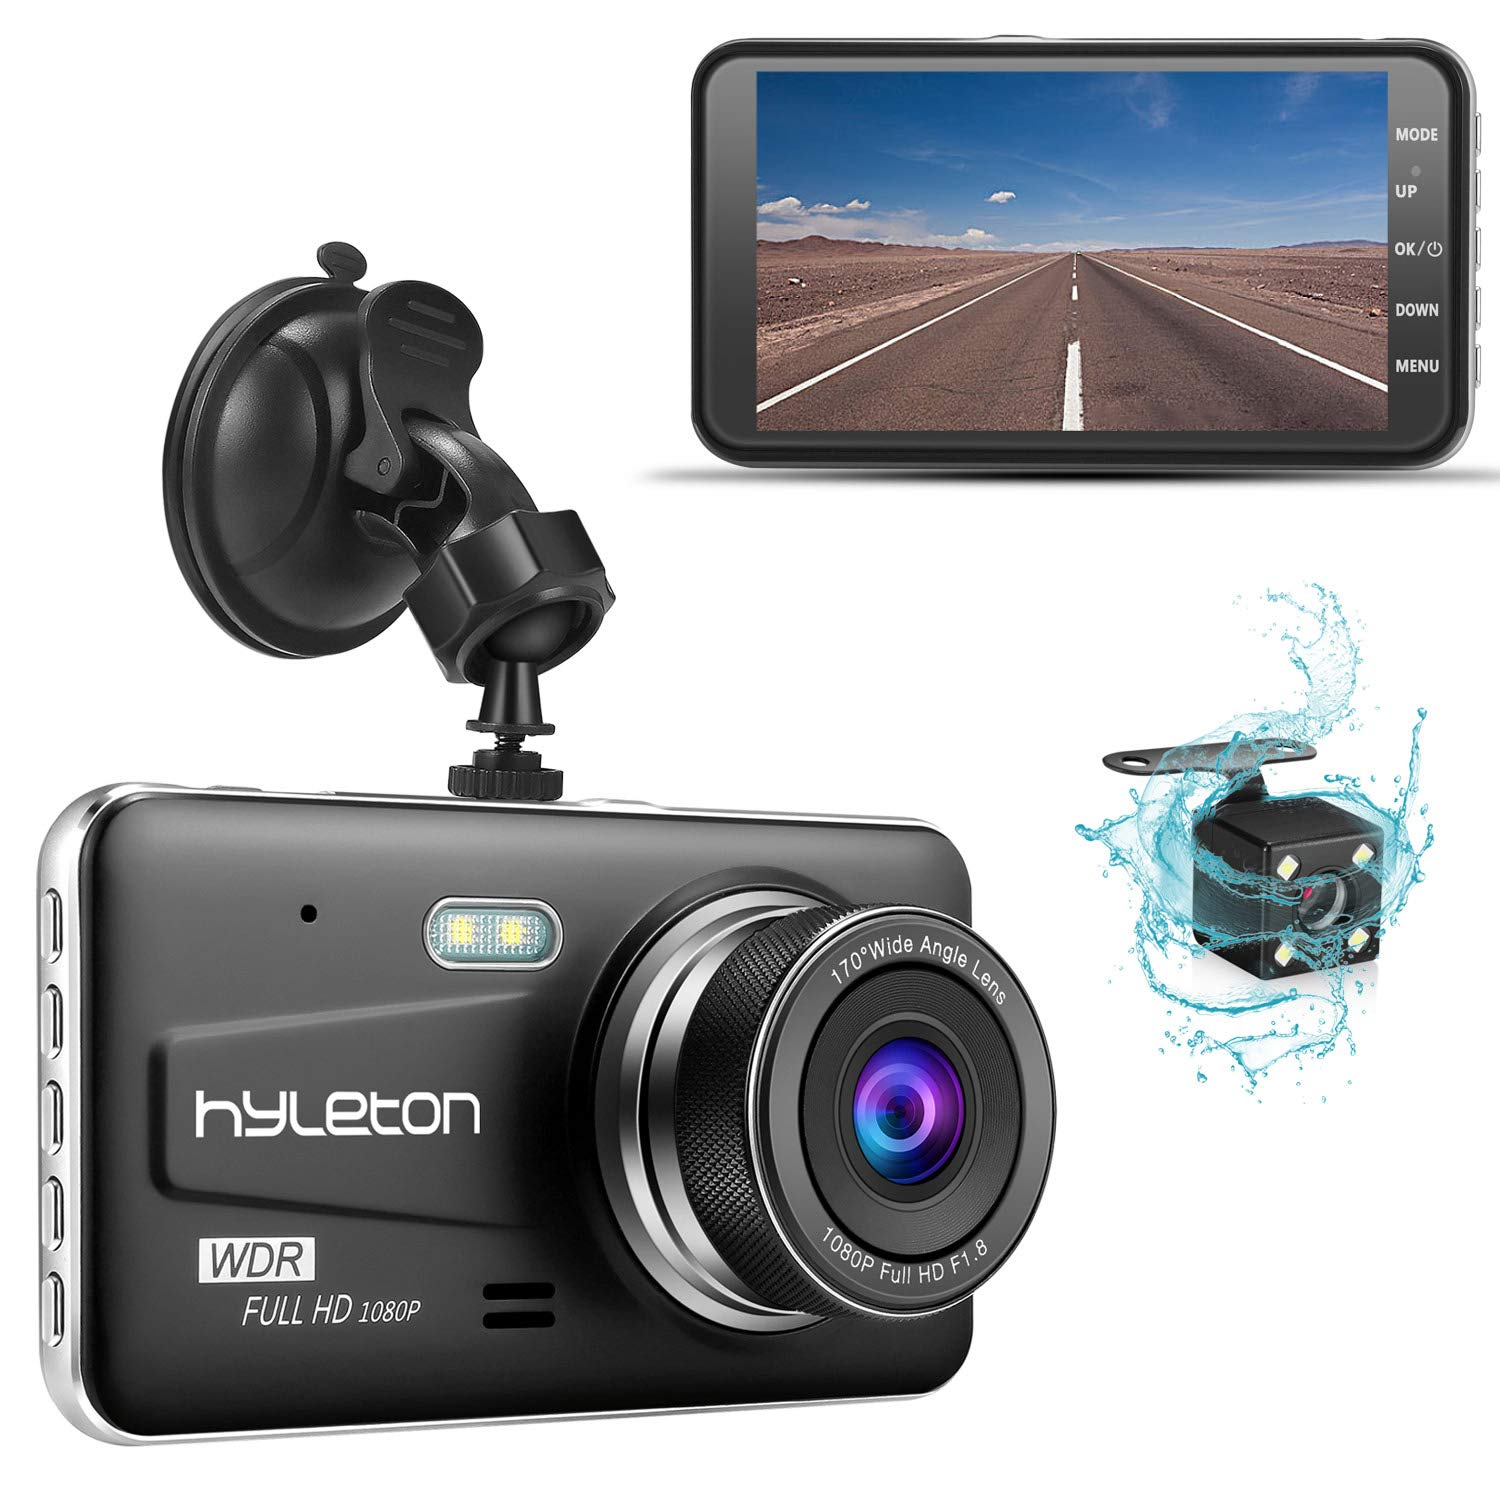 Dash Camera for Cars,hyleton 1080P HD Dual Dash Cam Front and Rear,4'' IPS Screen Dashboard Camera Recorder,170°Wide Angle, G-Sensor,WDR, Night Vision,Loop Recording, Parking Monitor, Motion Detection by hyleton